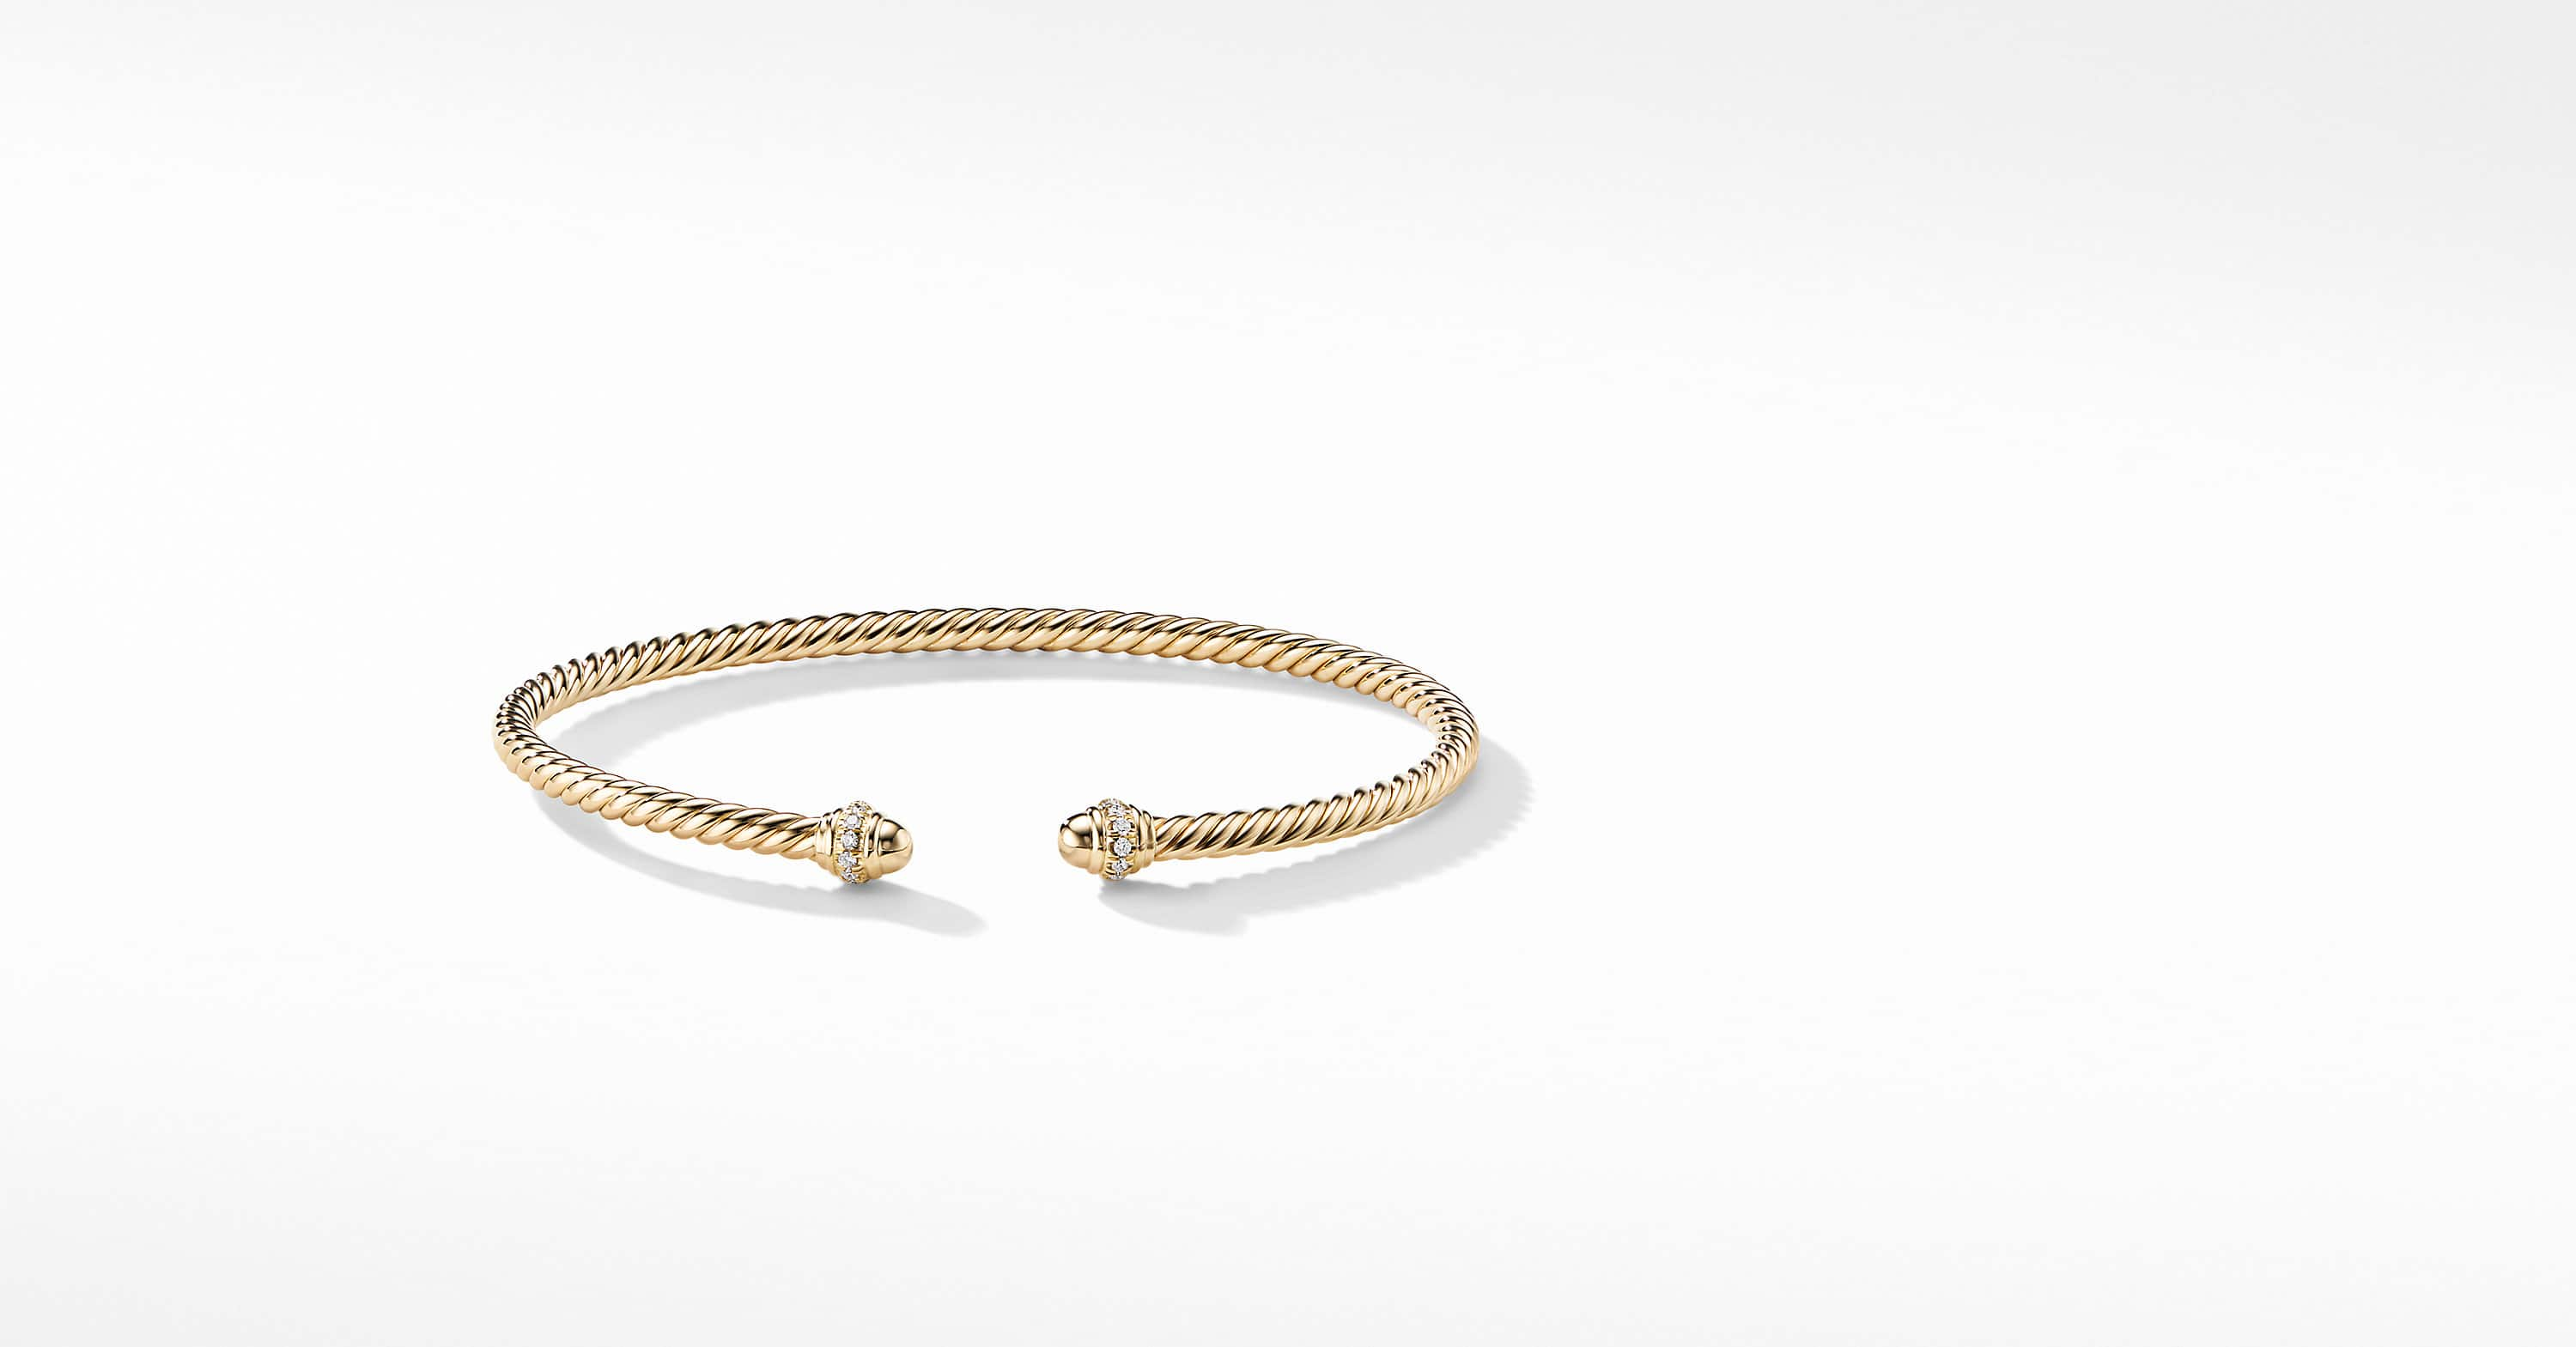 Bracelet Spira « Cable » en or 18 carats et diamants, 3 mm